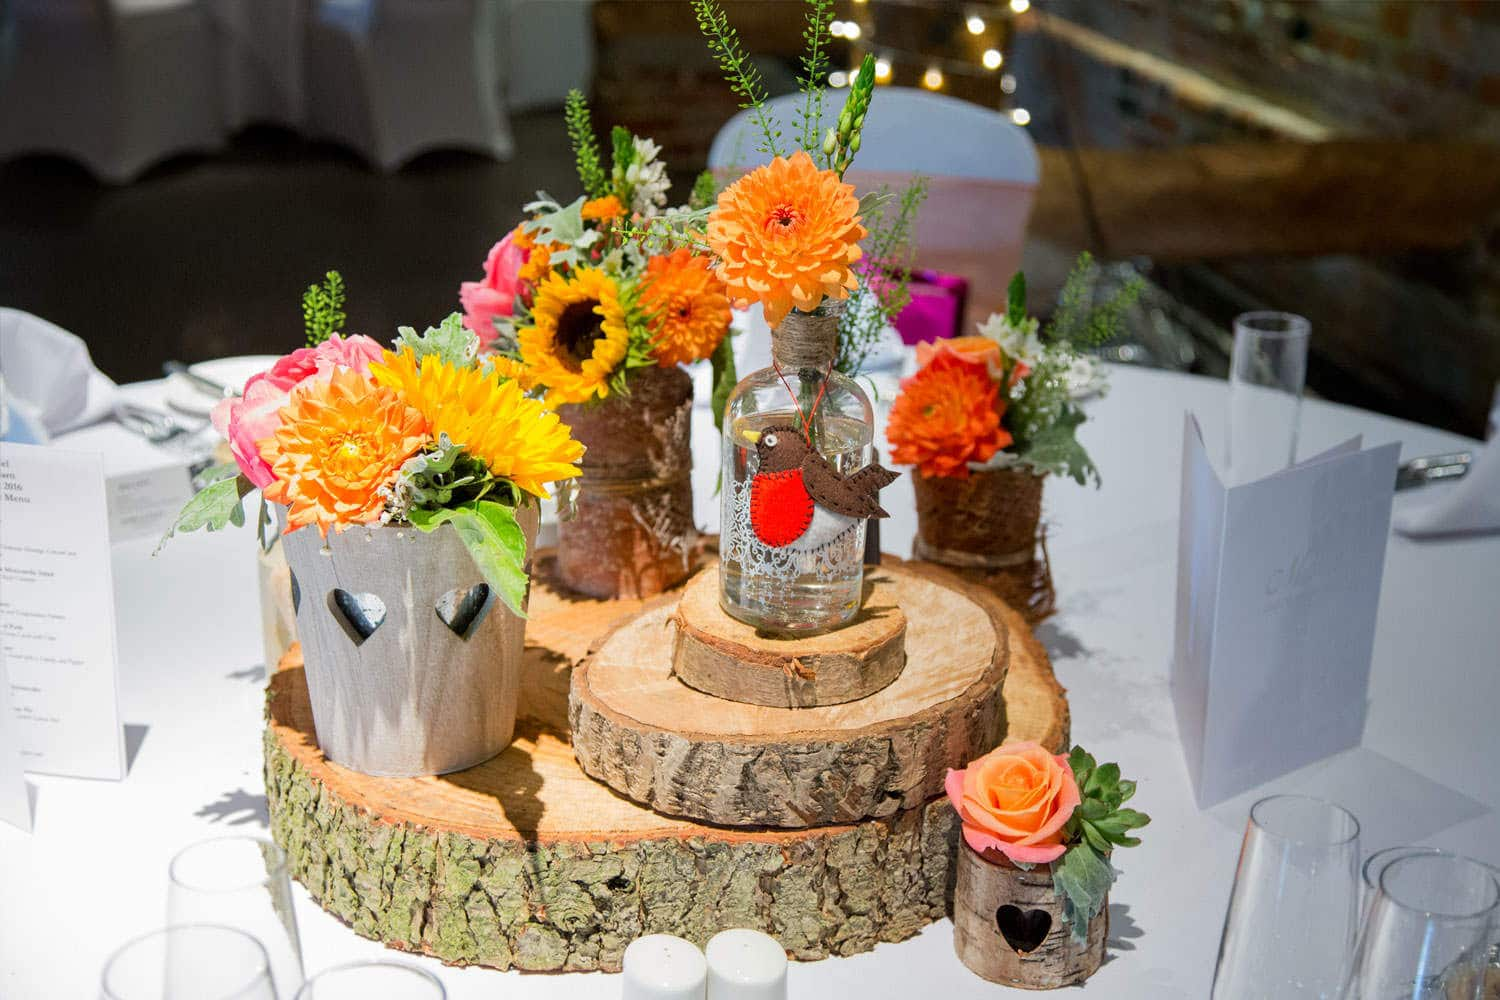 How to choose your wedding theme - Featured